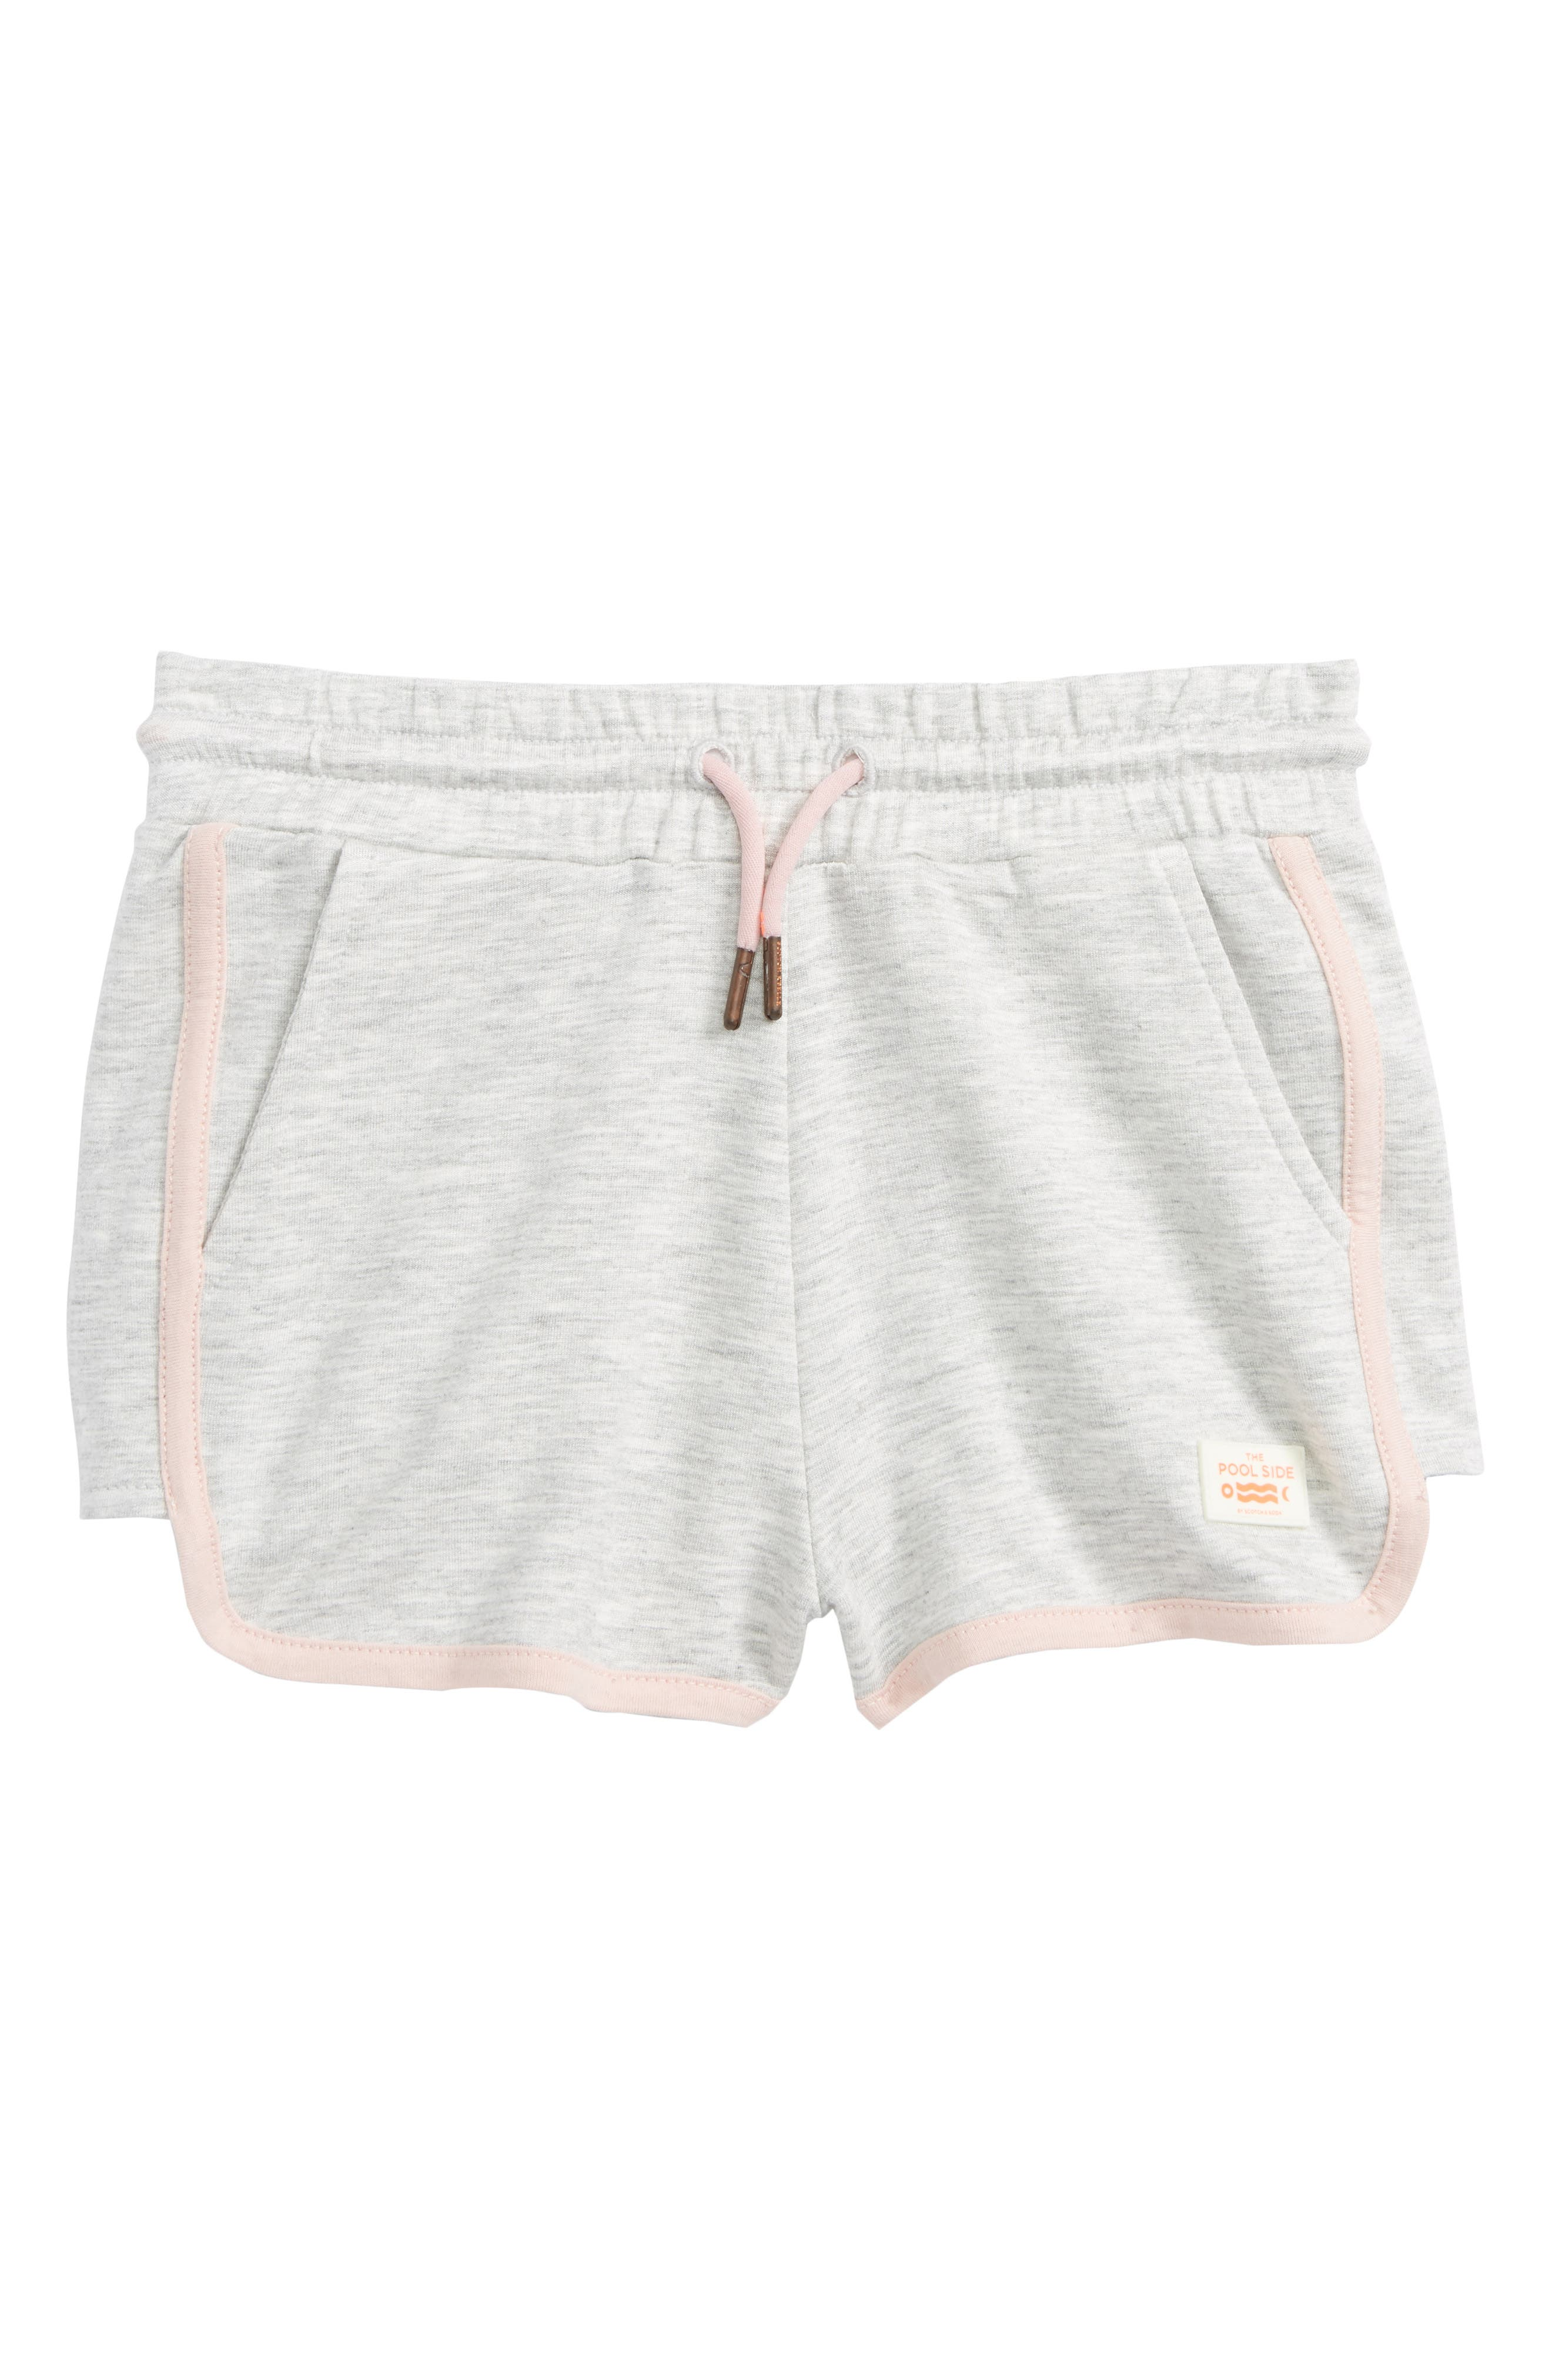 Scotch R'Belle The Pool Side Shorts,                             Main thumbnail 1, color,                             606 Grey Mel